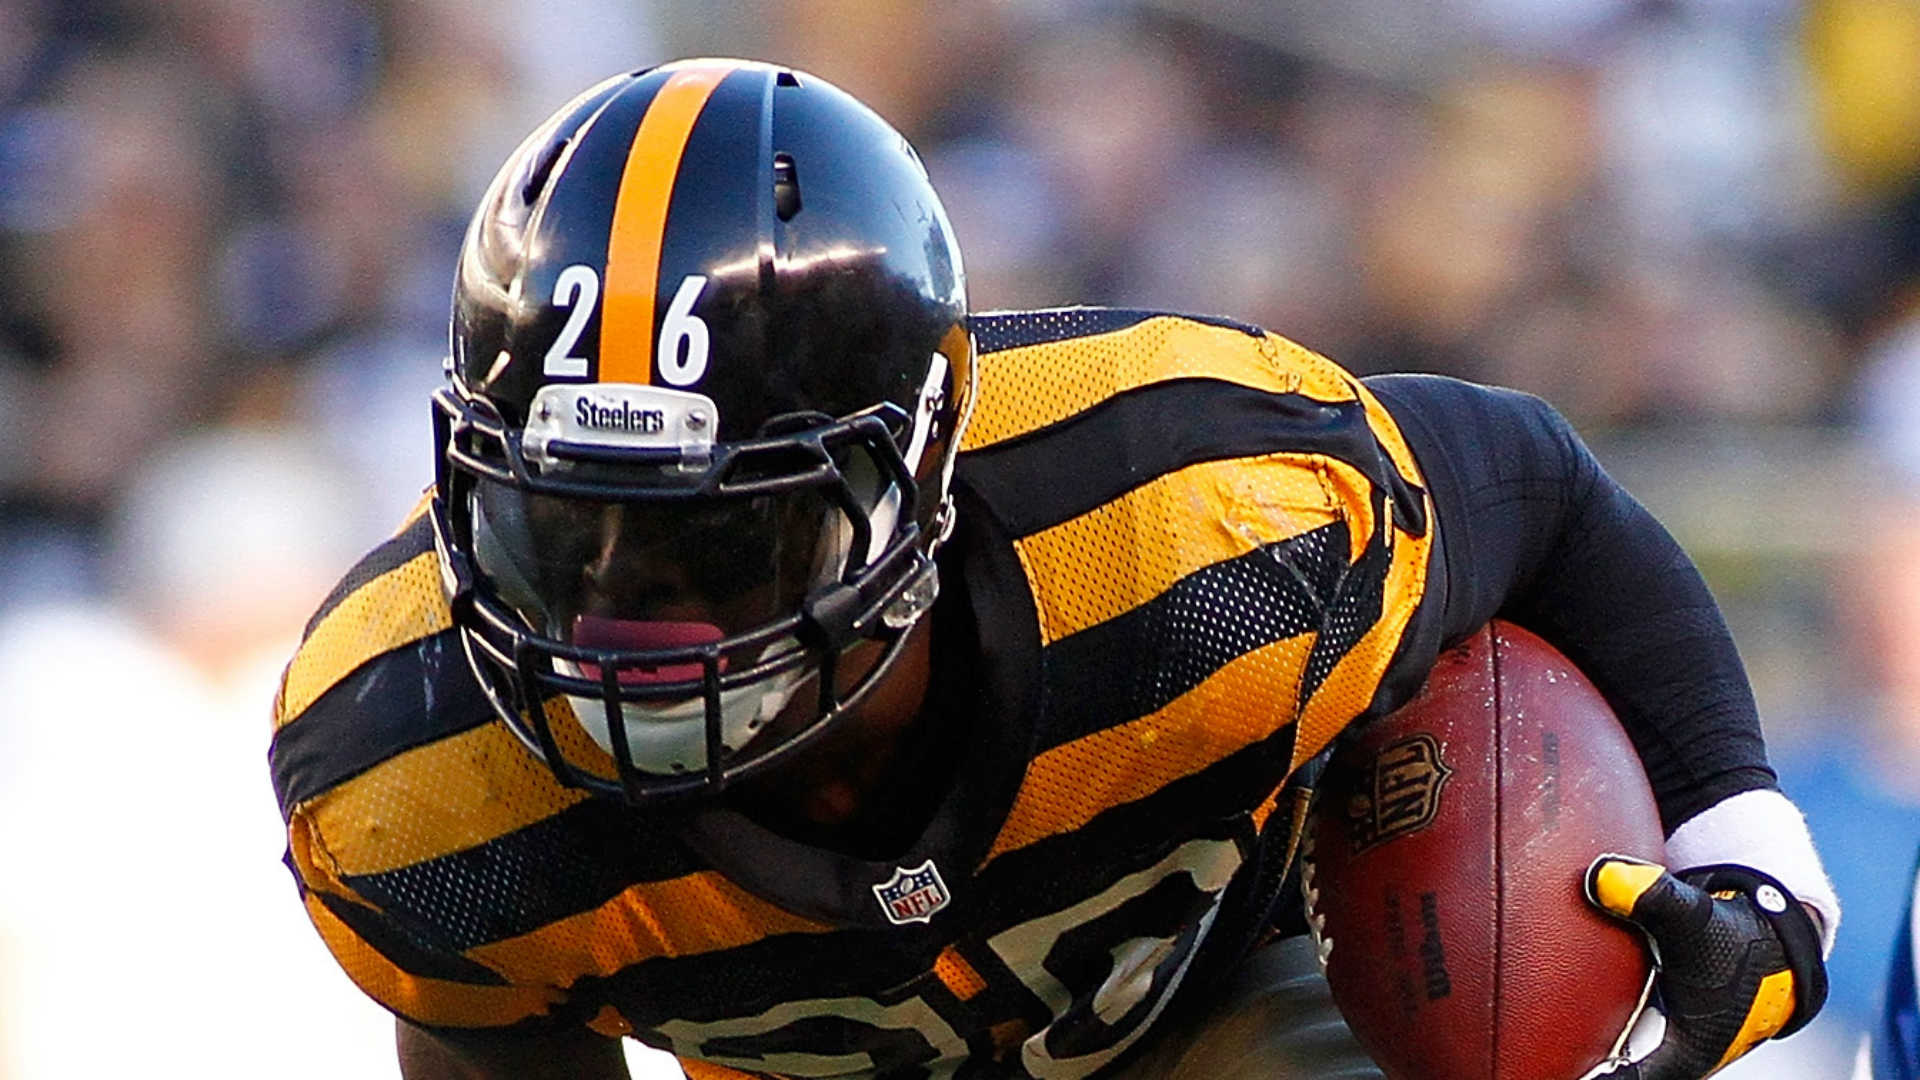 Steelers' Le'Veon Bell vows to come back 'stronger' after groin surgery